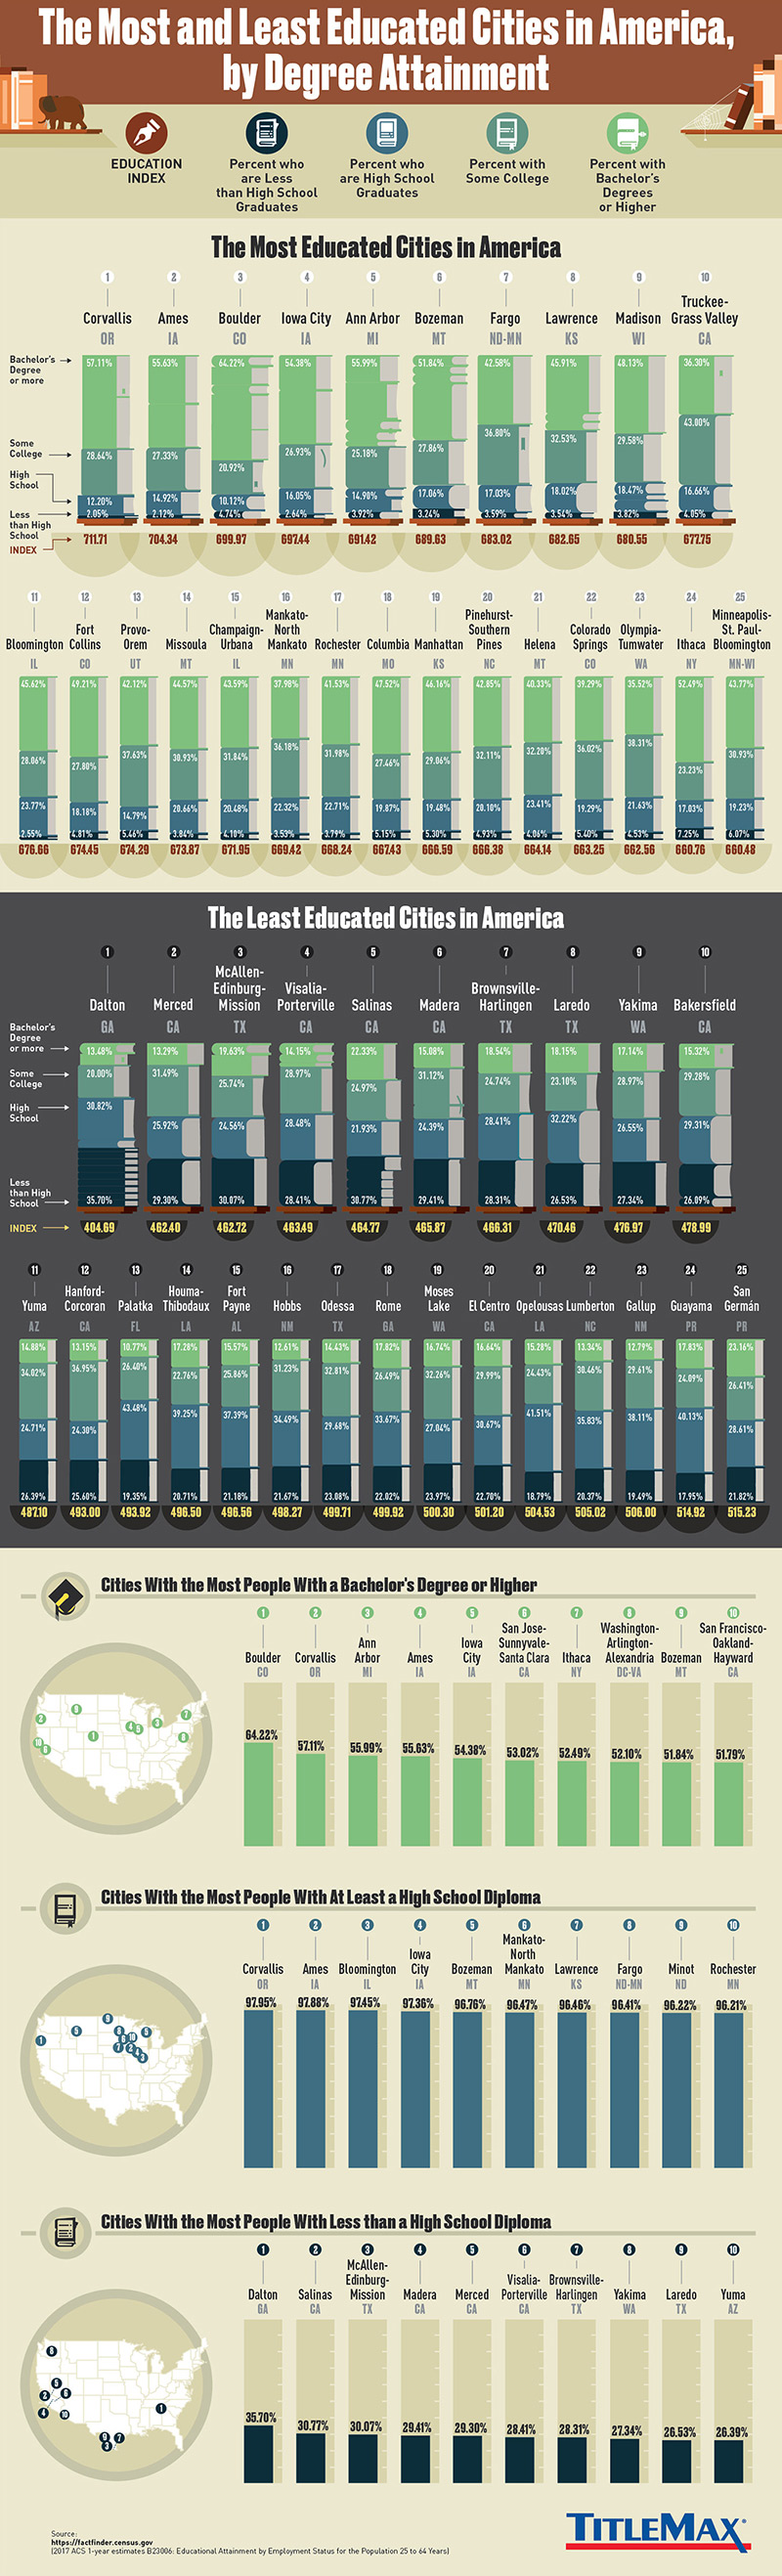 most and least educated cities in us infographic